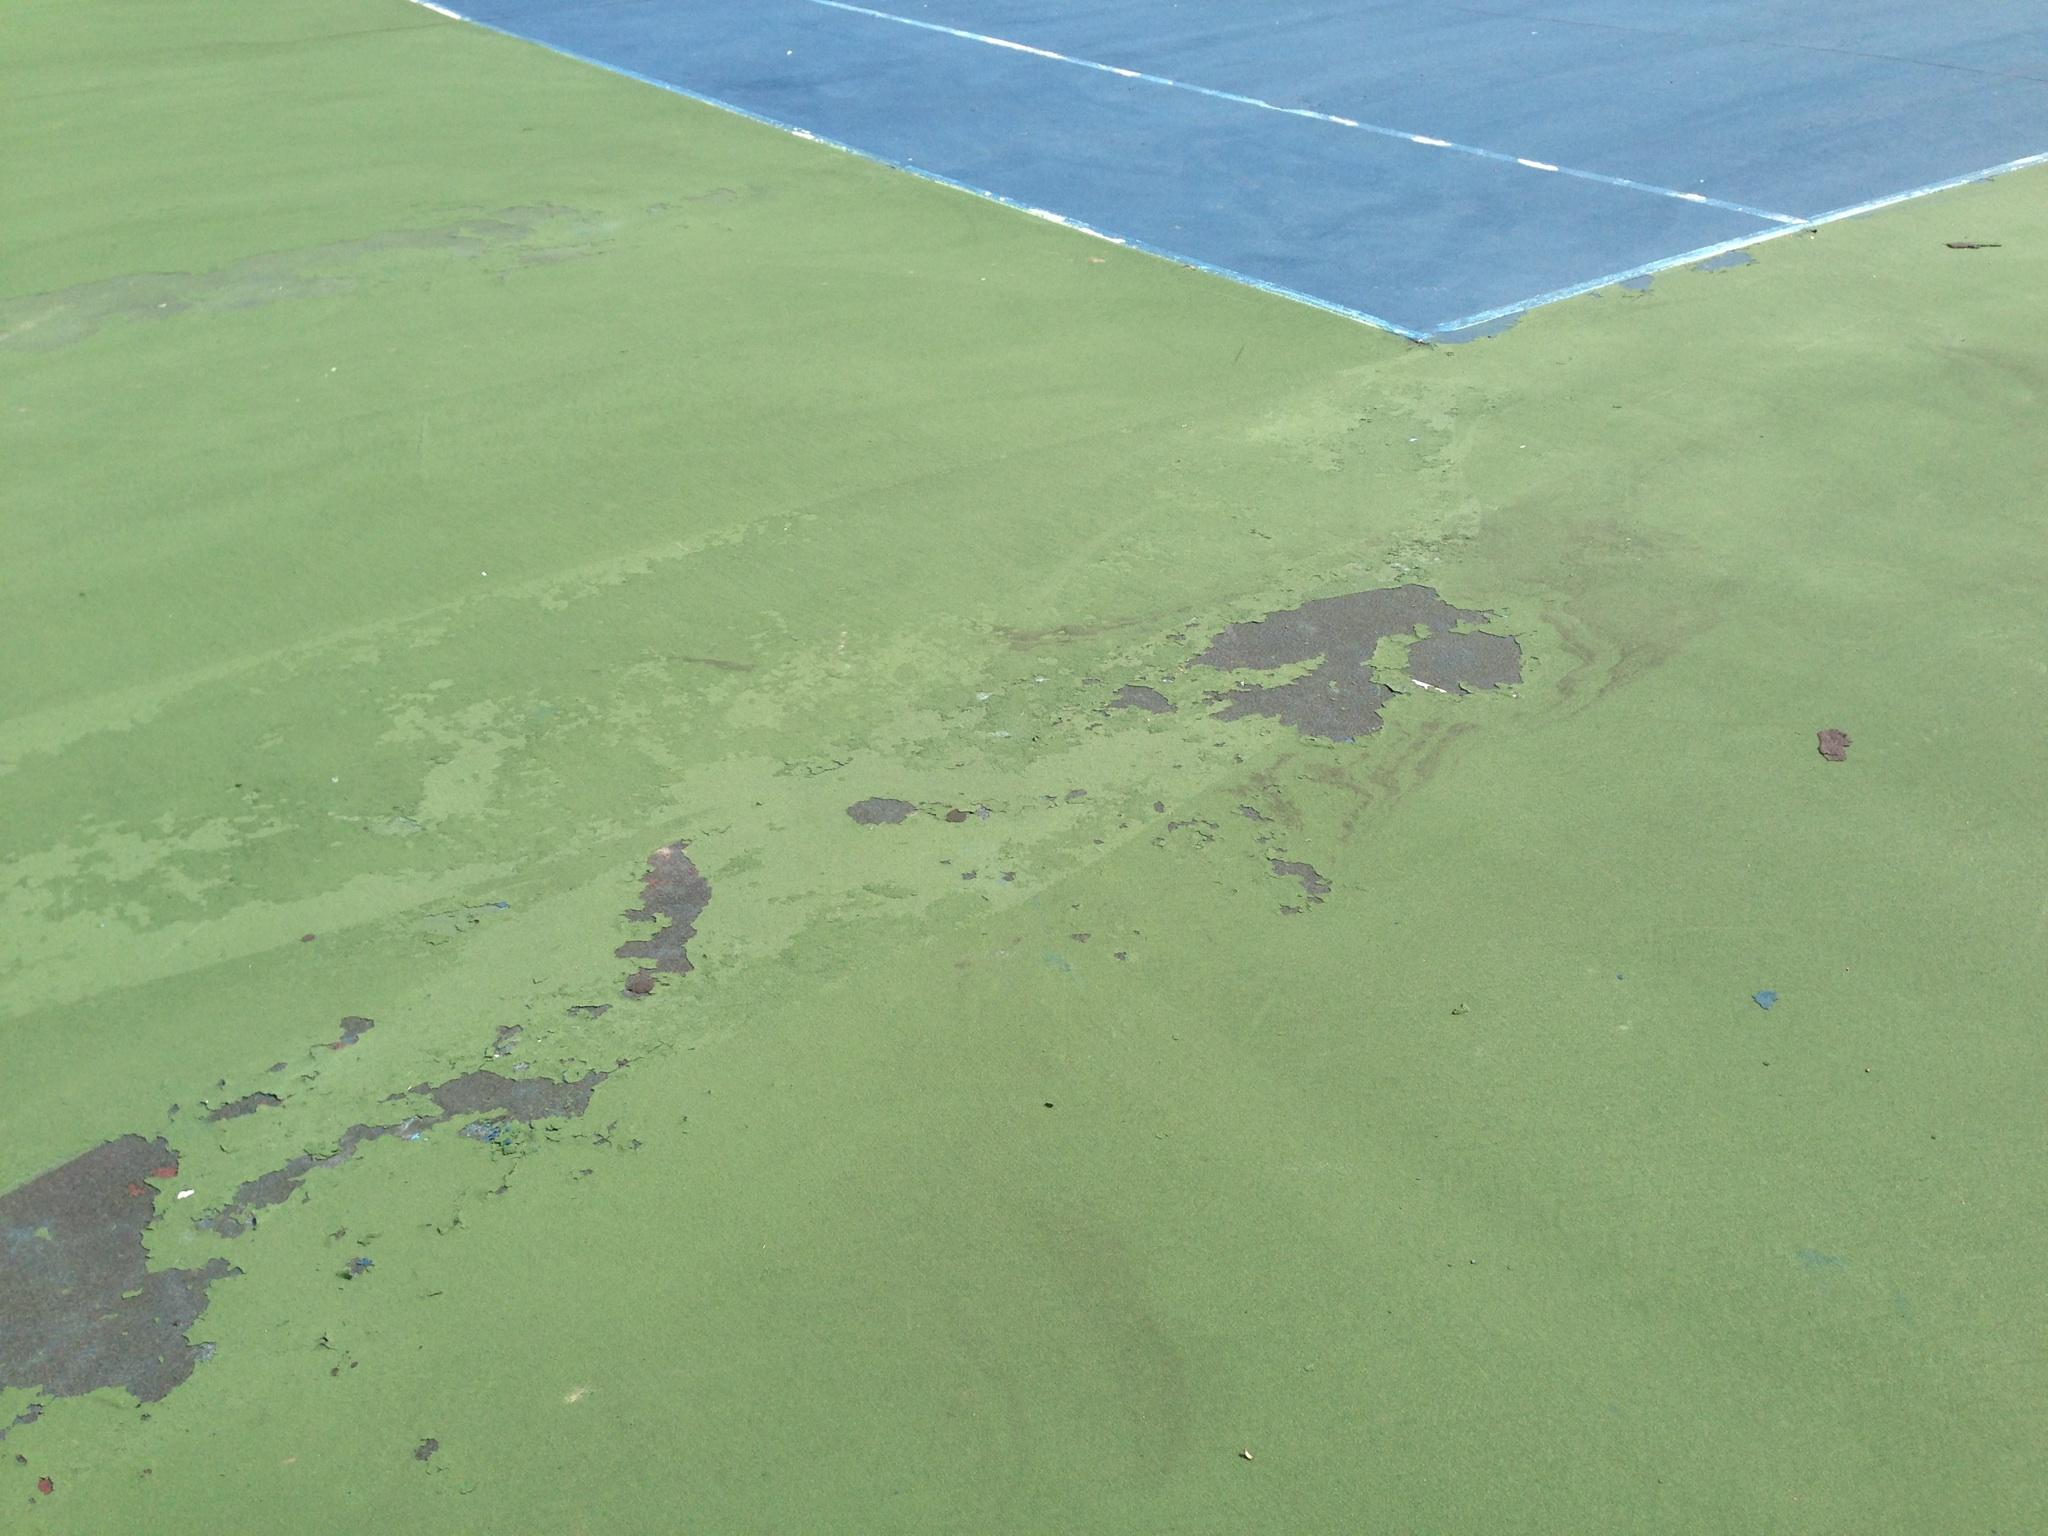 Tennis Court Coating Failure